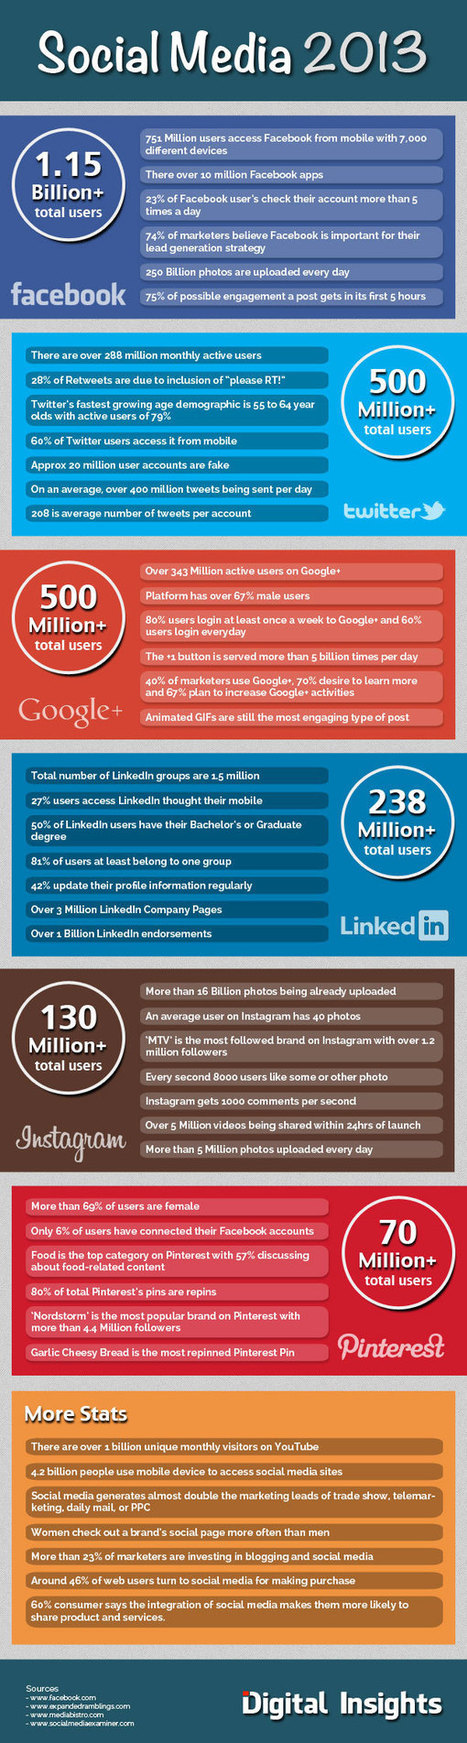 45 Amazing Social Media Facts of 2013 [Infographic] | Internet Strategy & E-Marketing | Scoop.it